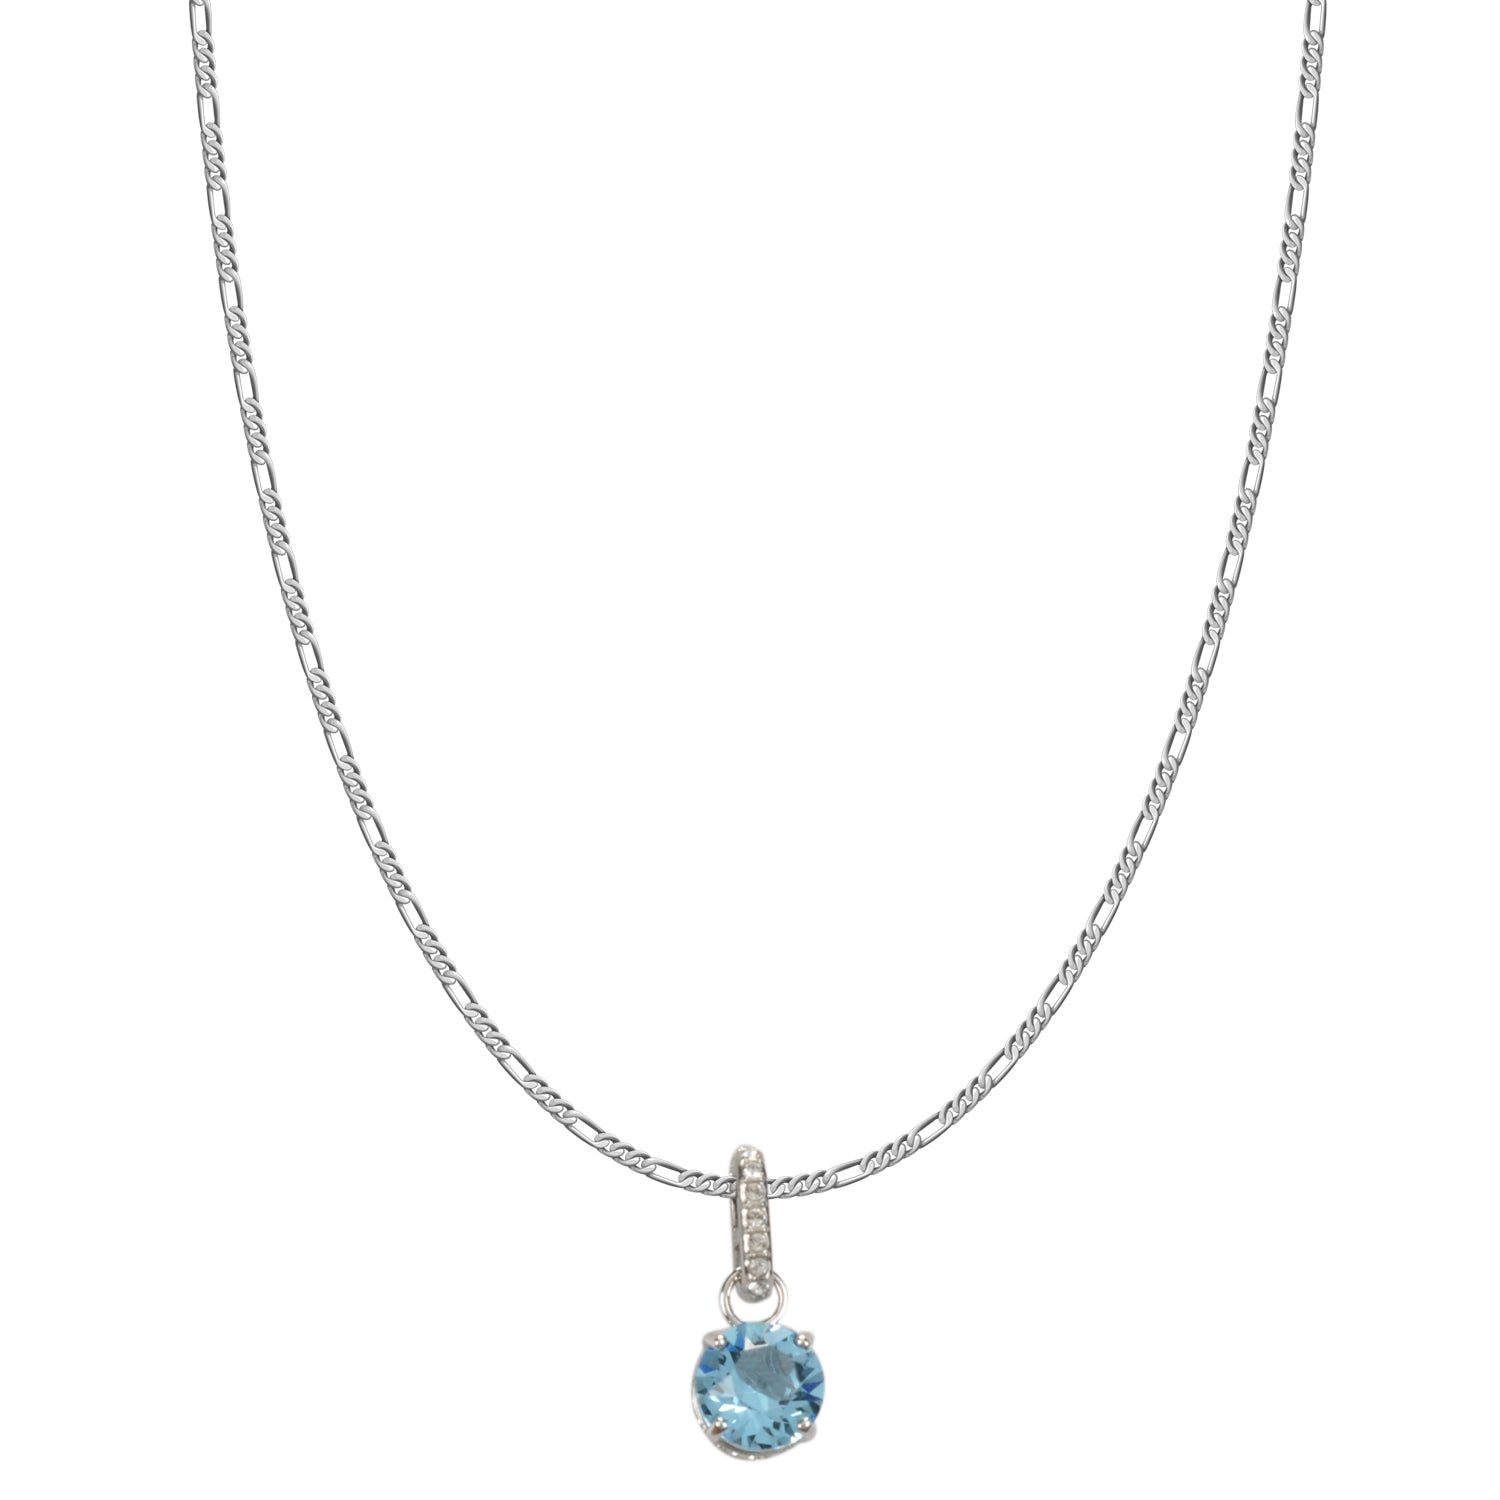 Swarovski Remix Collection Aqua March Charm In Rhodium Plated | Shop Luxury Swarovski Charm Online